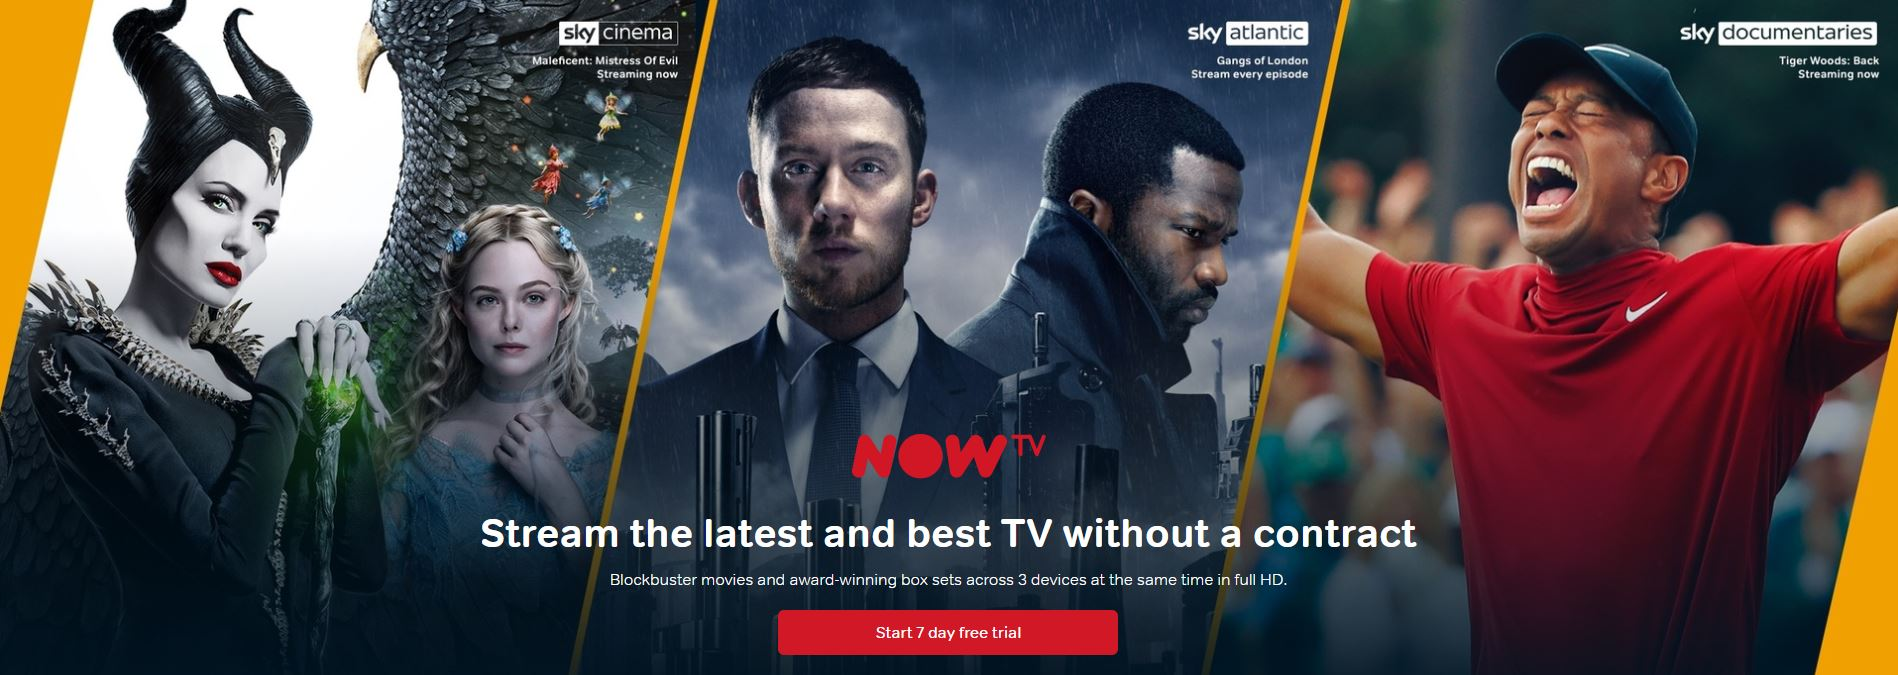 NOW TV Homepage